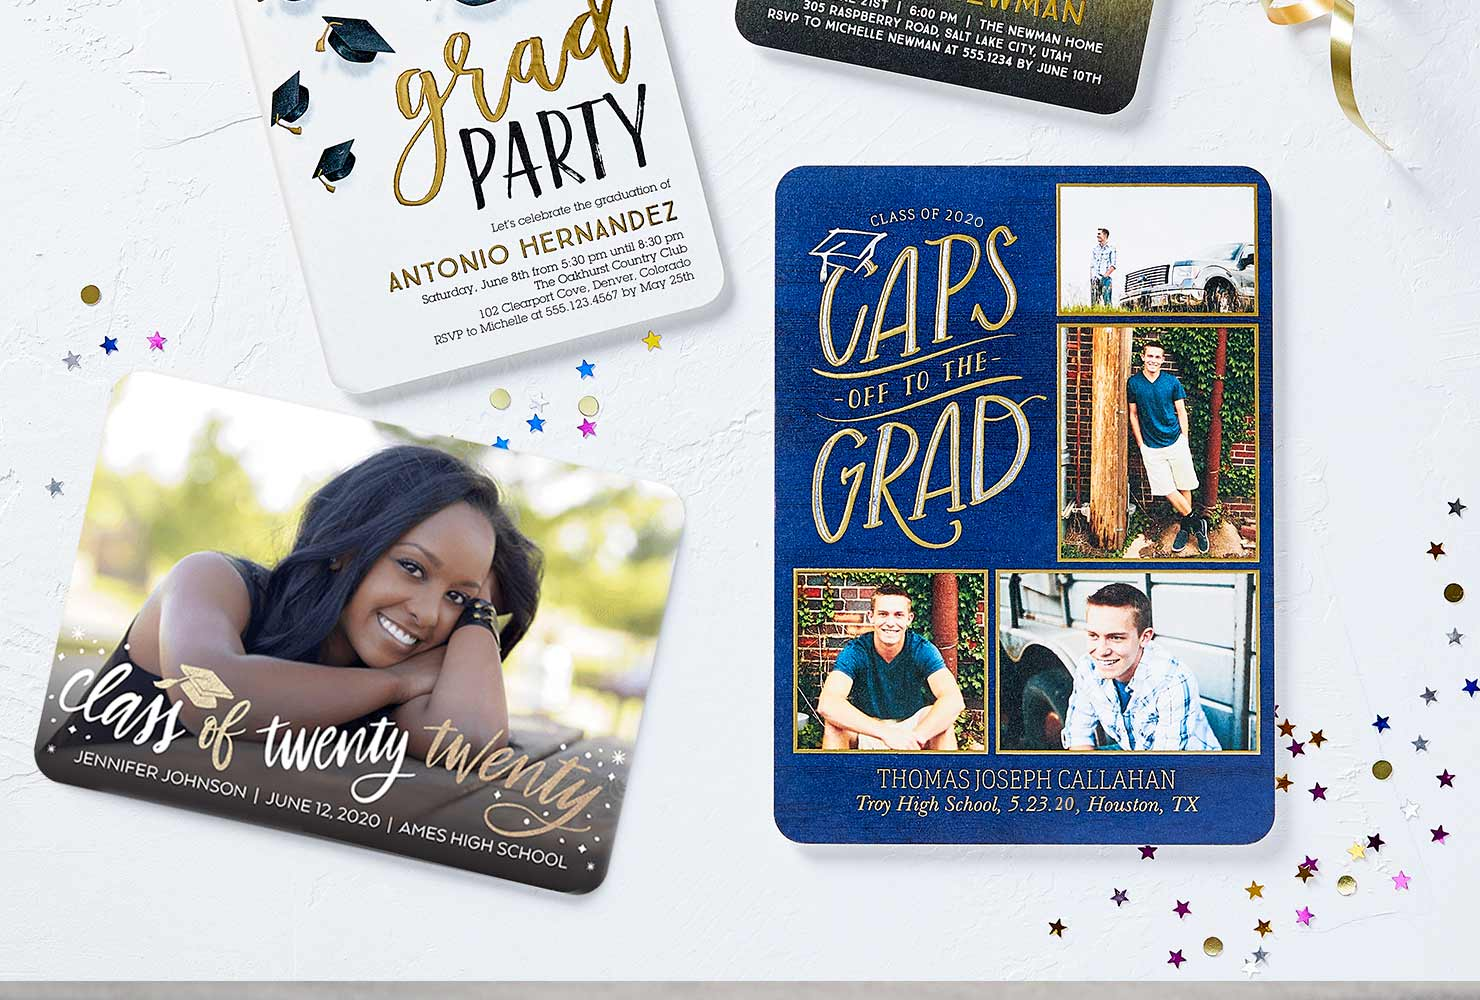 Festive photo graduation party invitations